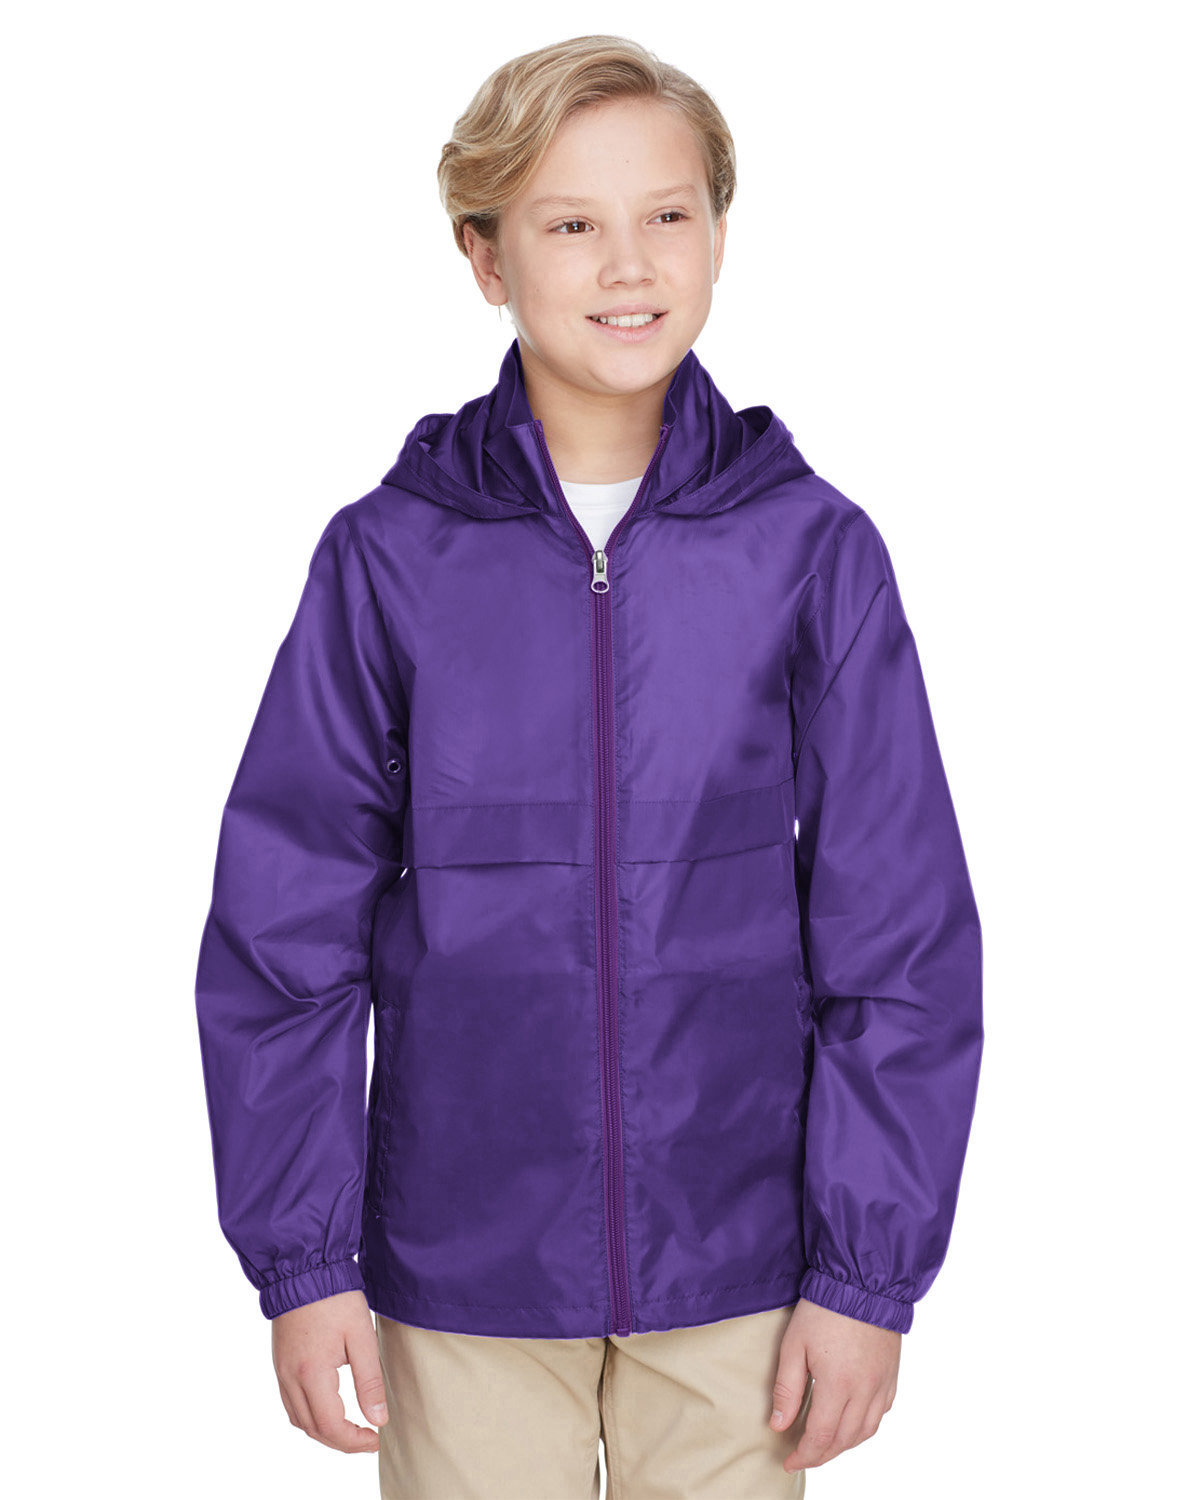 Team 365 Youth Zone Protect Lightweight Jacket SPORT PURPLE